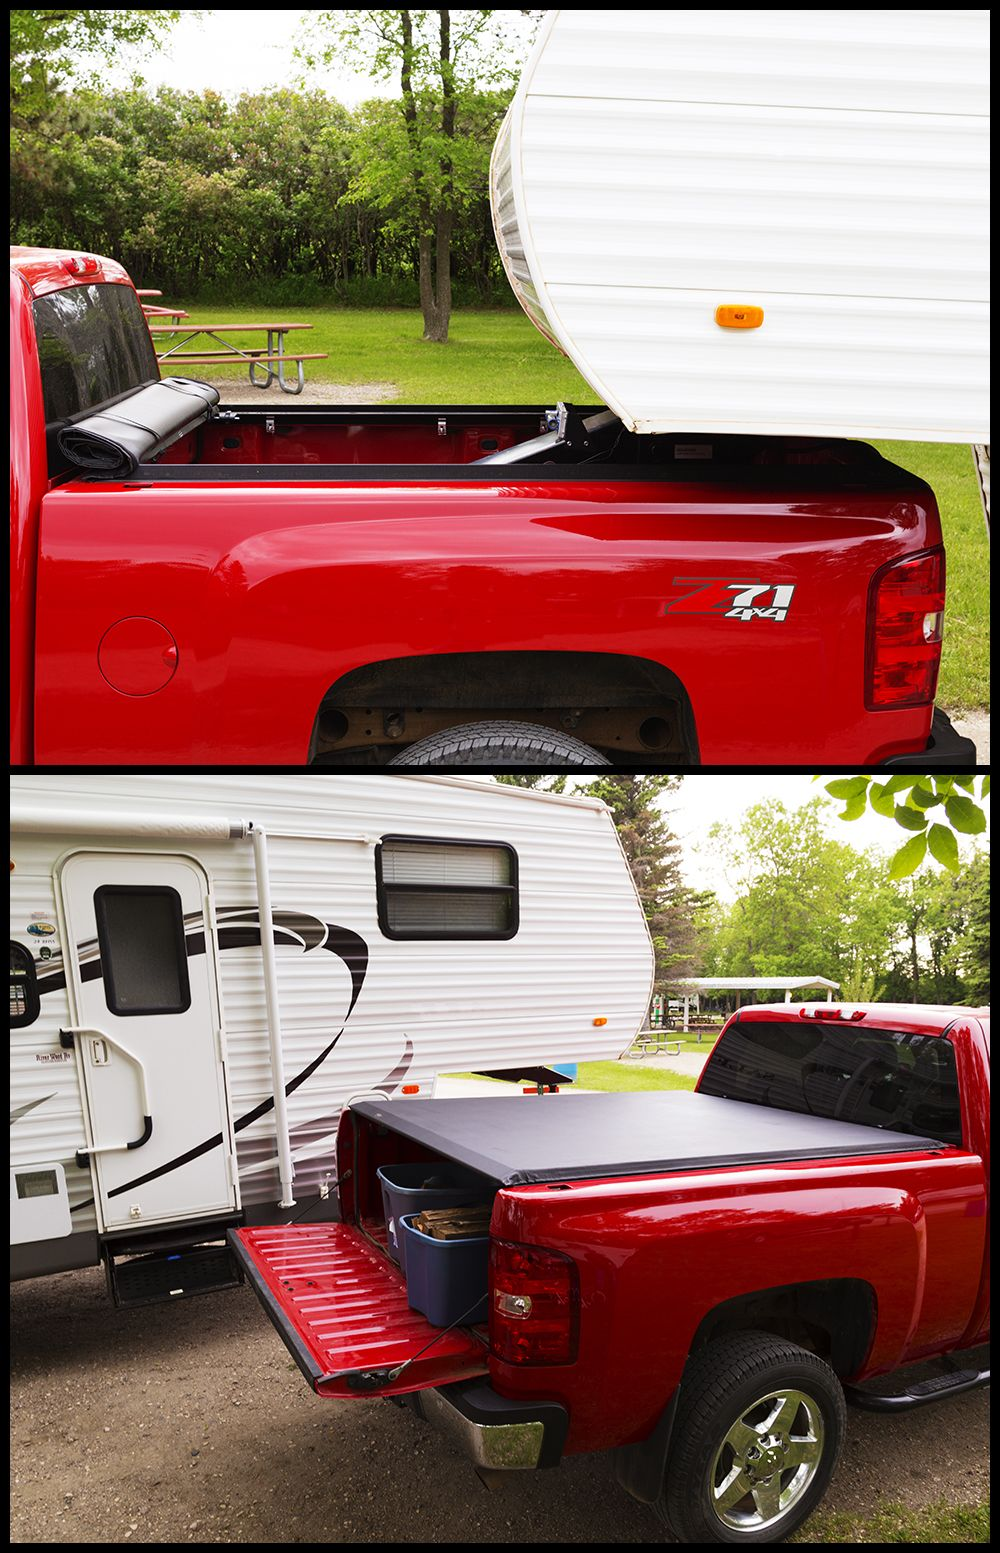 If you want to tow a big camper or other trailers, you